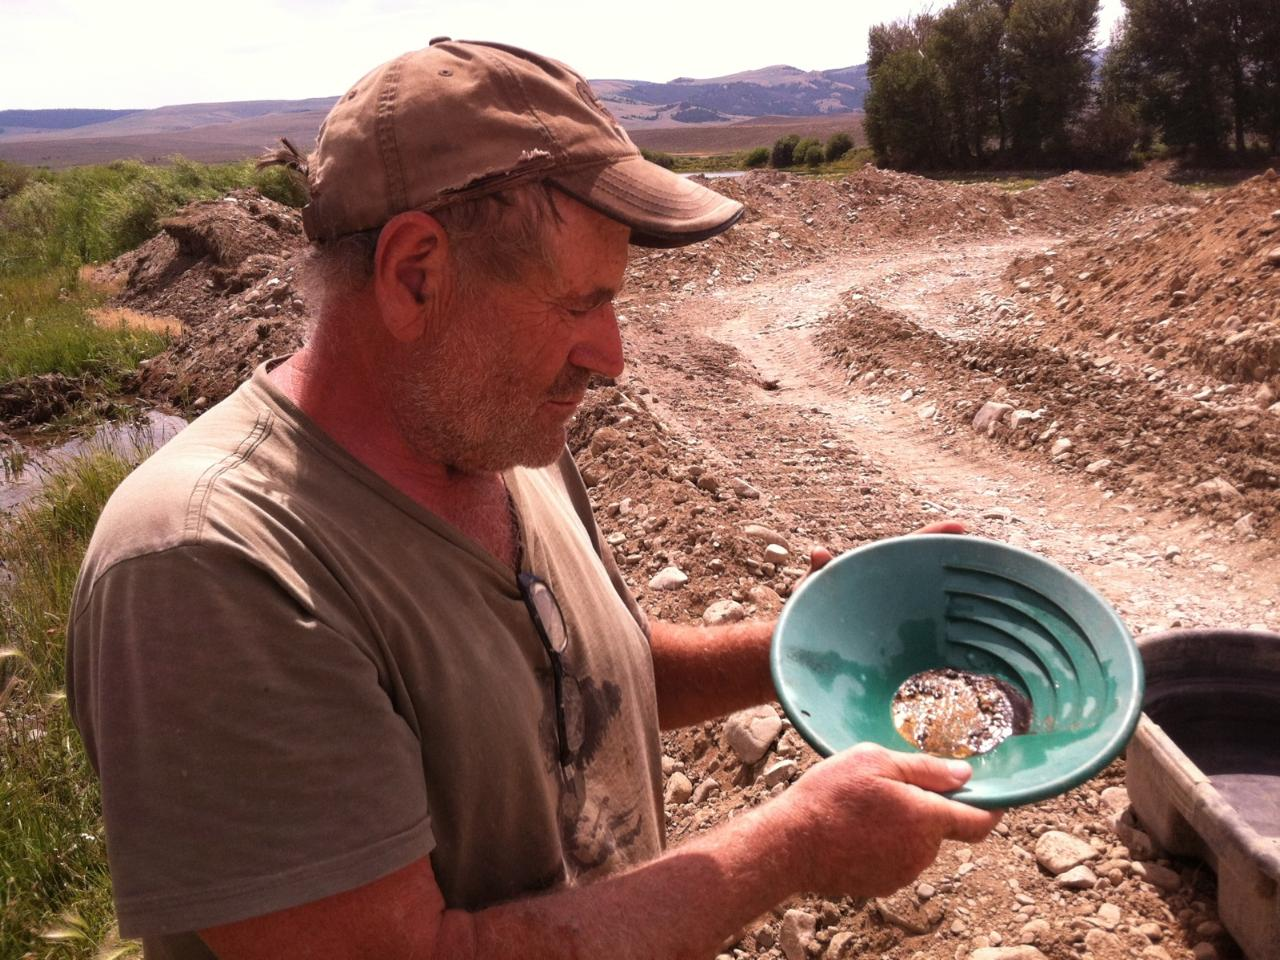 Gold mining adventures in Montana